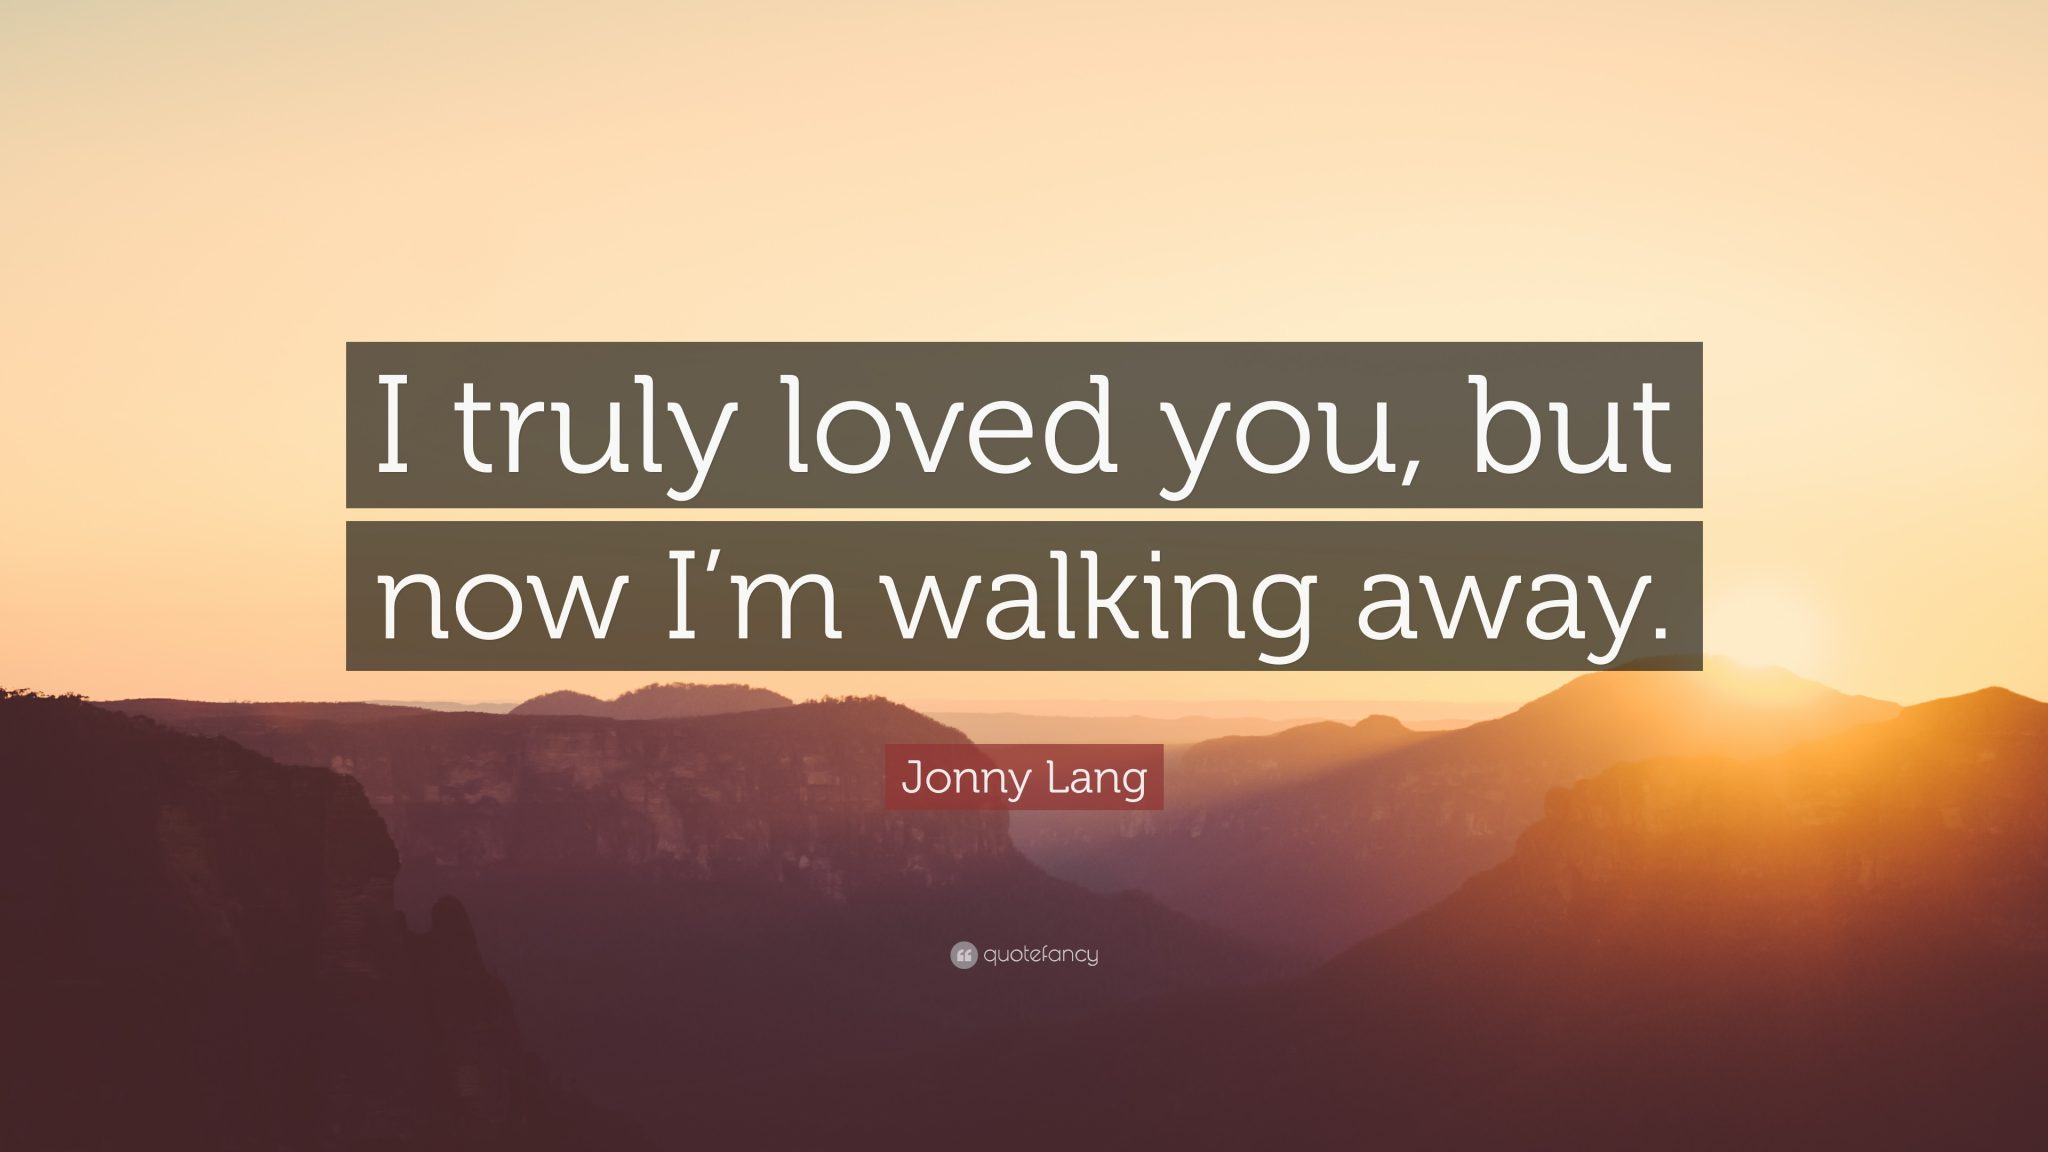 55 Best Walking Away Quotes to Inspire You